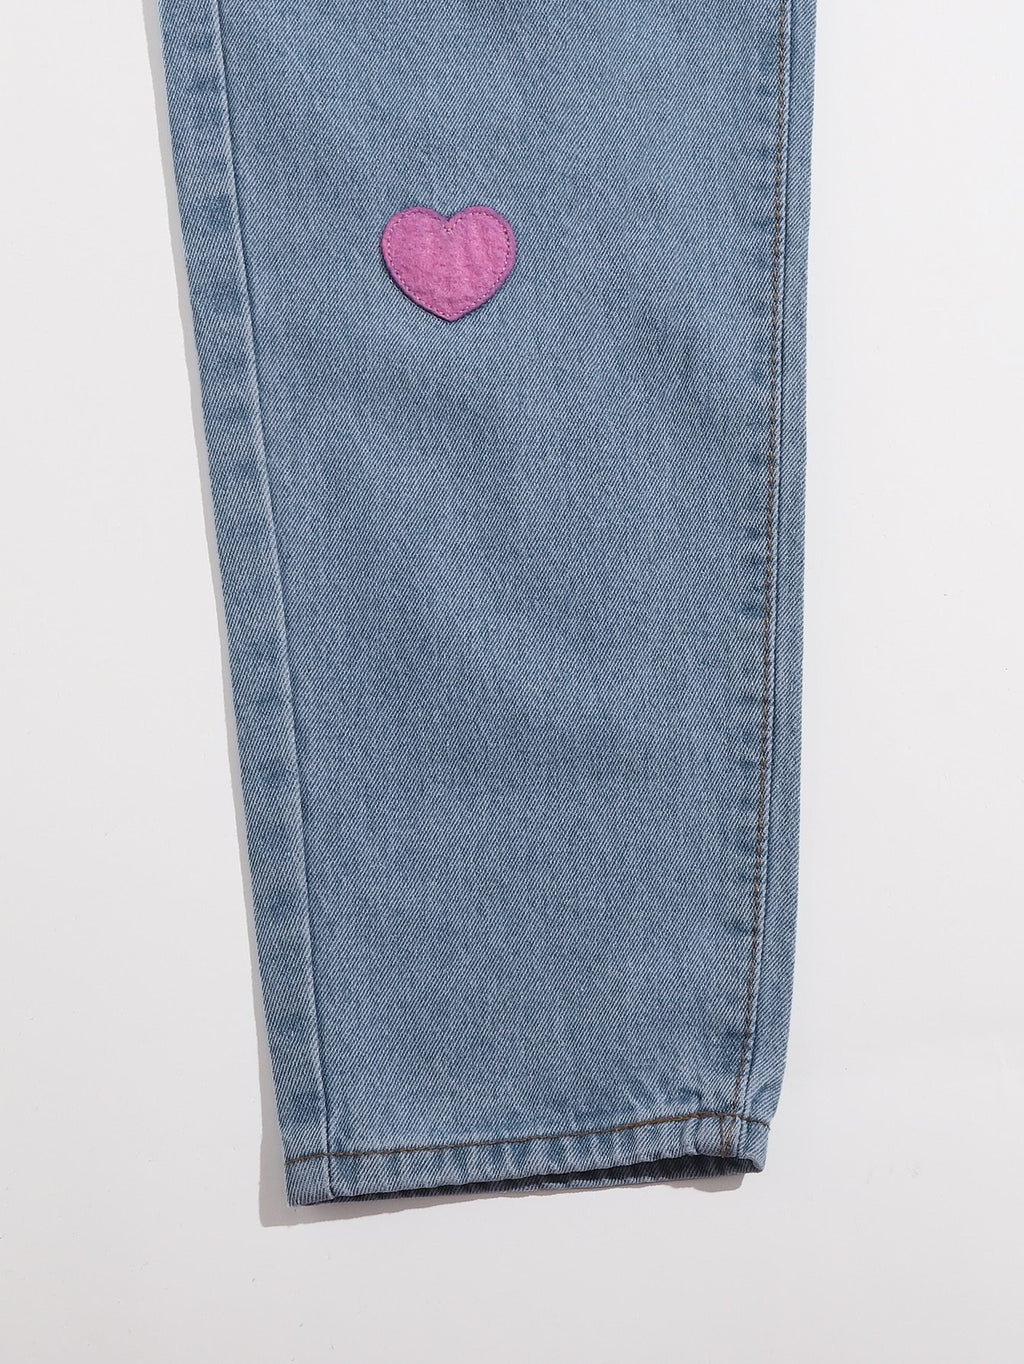 Heart Patched Drawstring Jeans - INS | Online Fashion Free Shipping Clothing, Dresses, Tops, Shoes